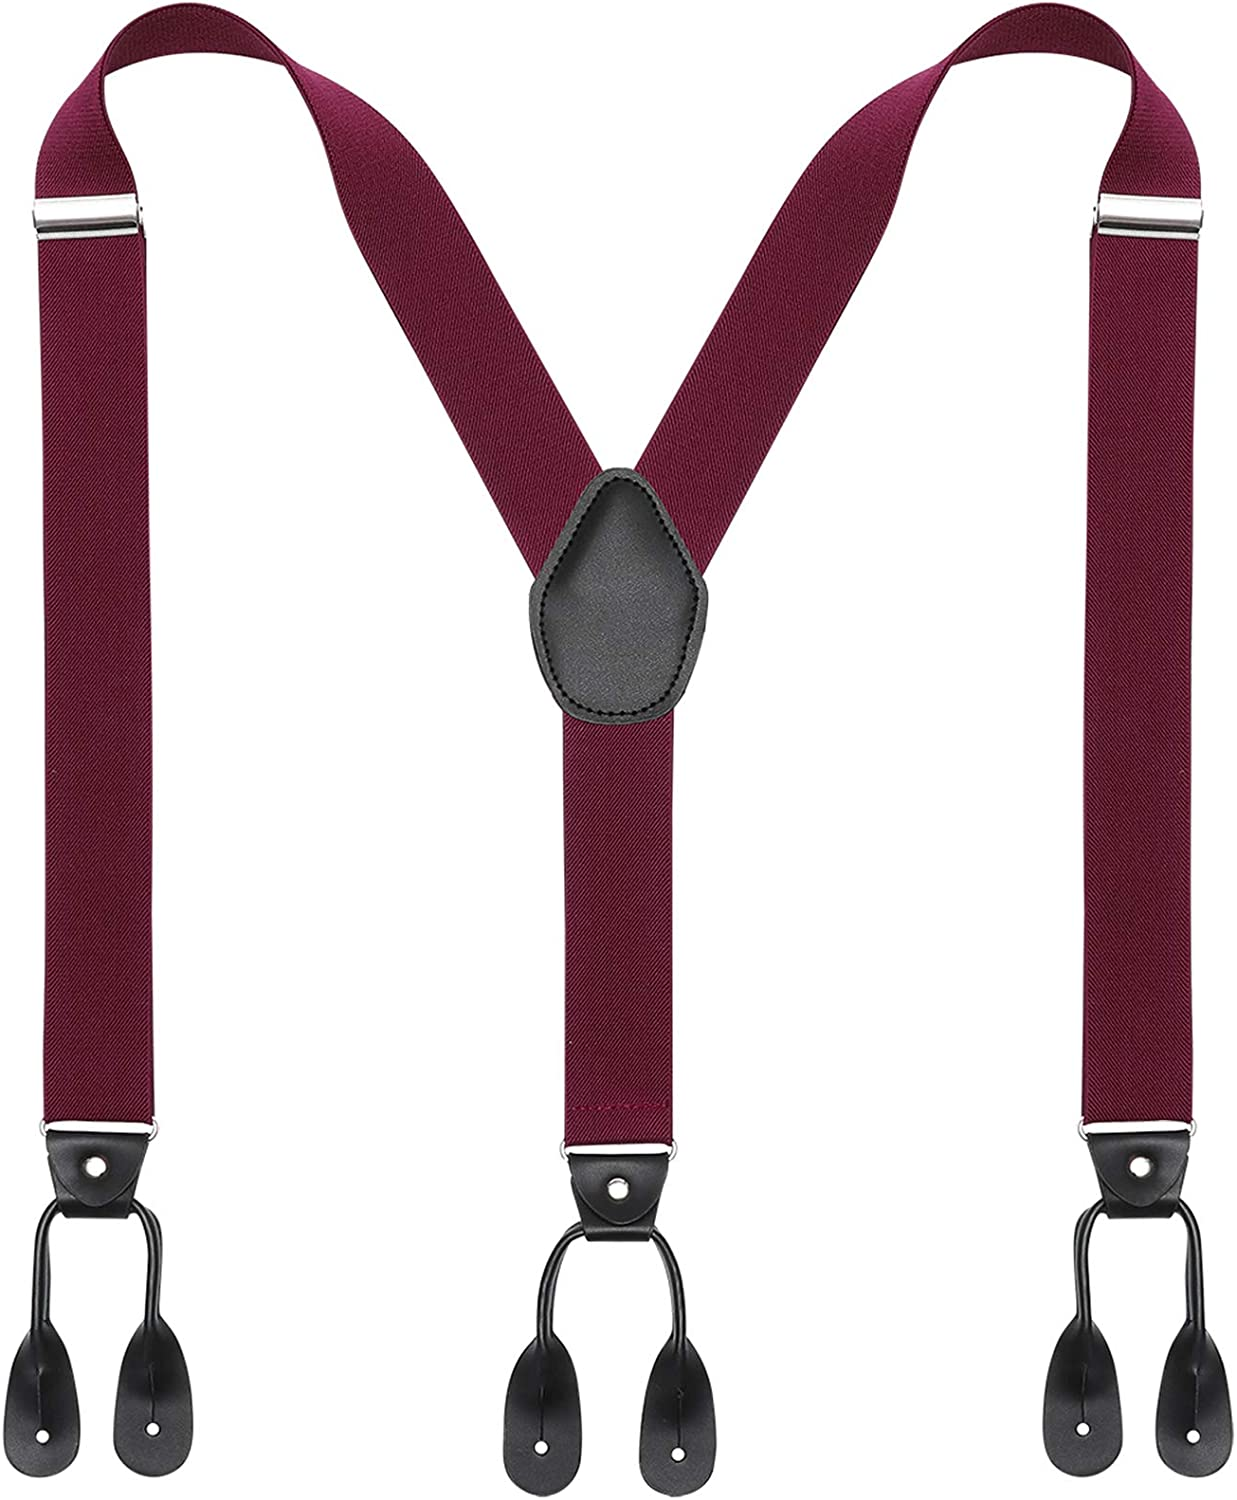 Mens Braces Button End Suspenders Y Shaped 1.4 Inches Width Elastic Suspenders with Heavy Duty Leather Buttons End Adjustable Braces